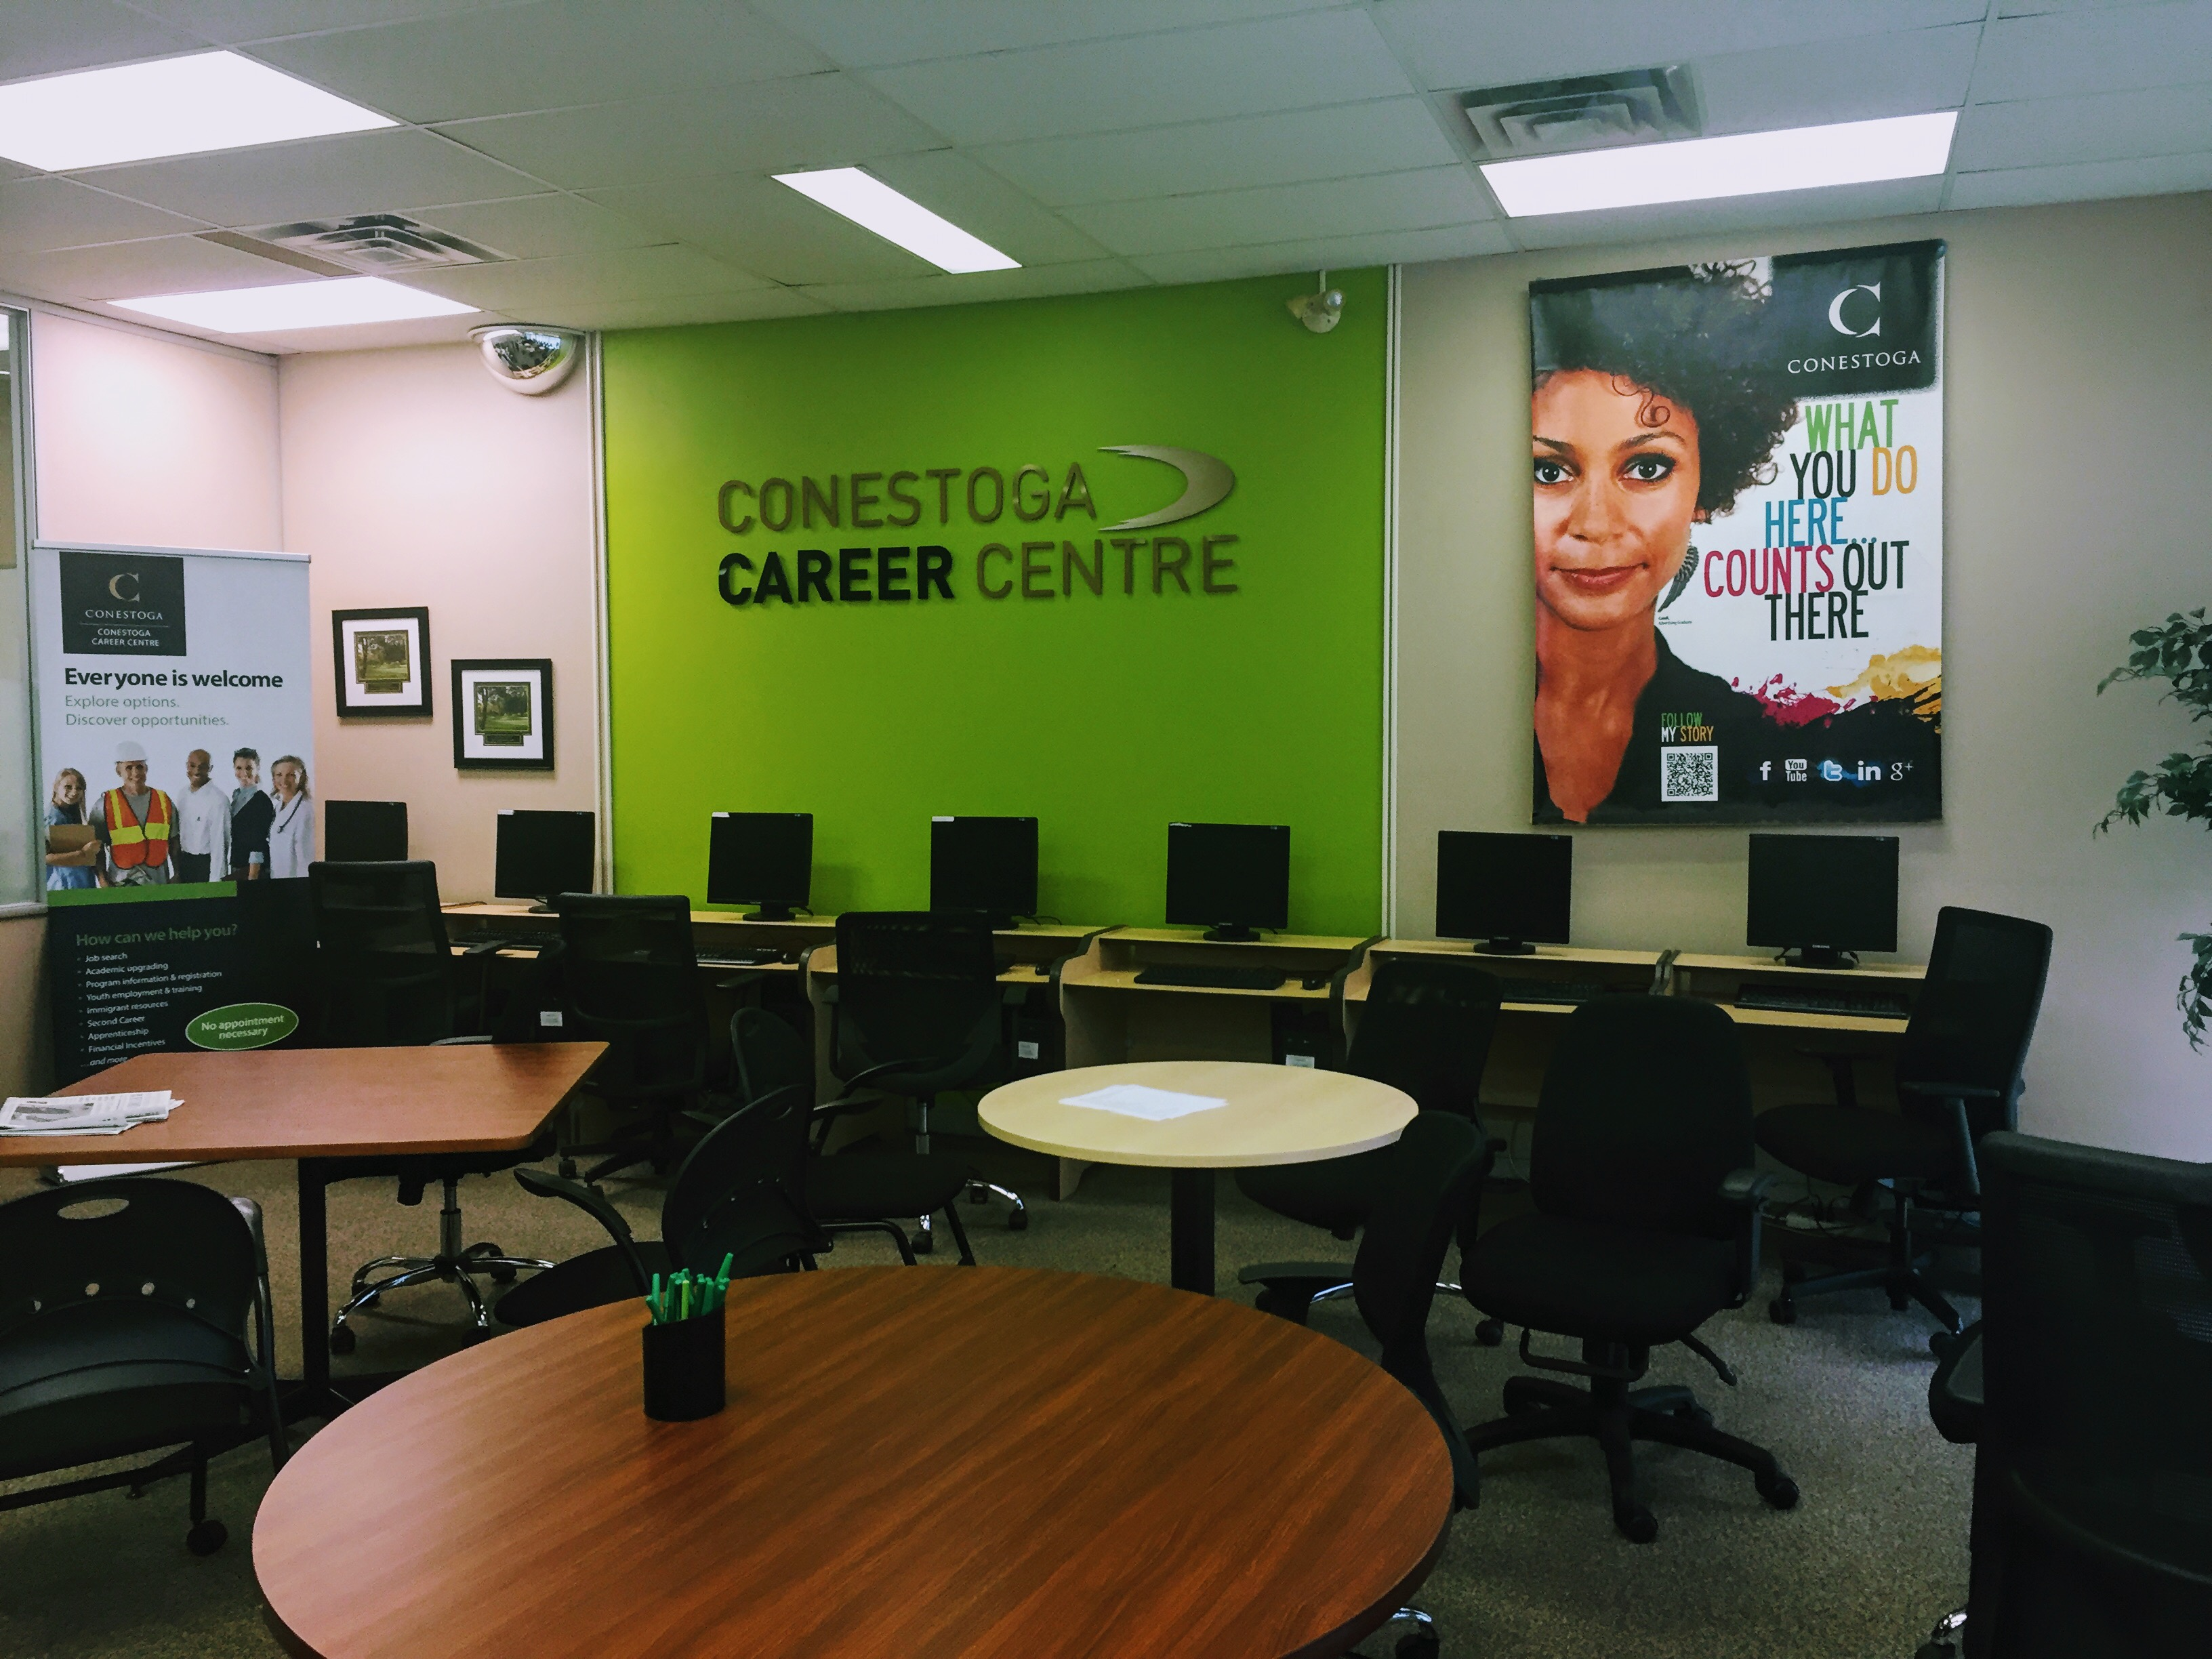 Conestoga College - Career Centre.JPG